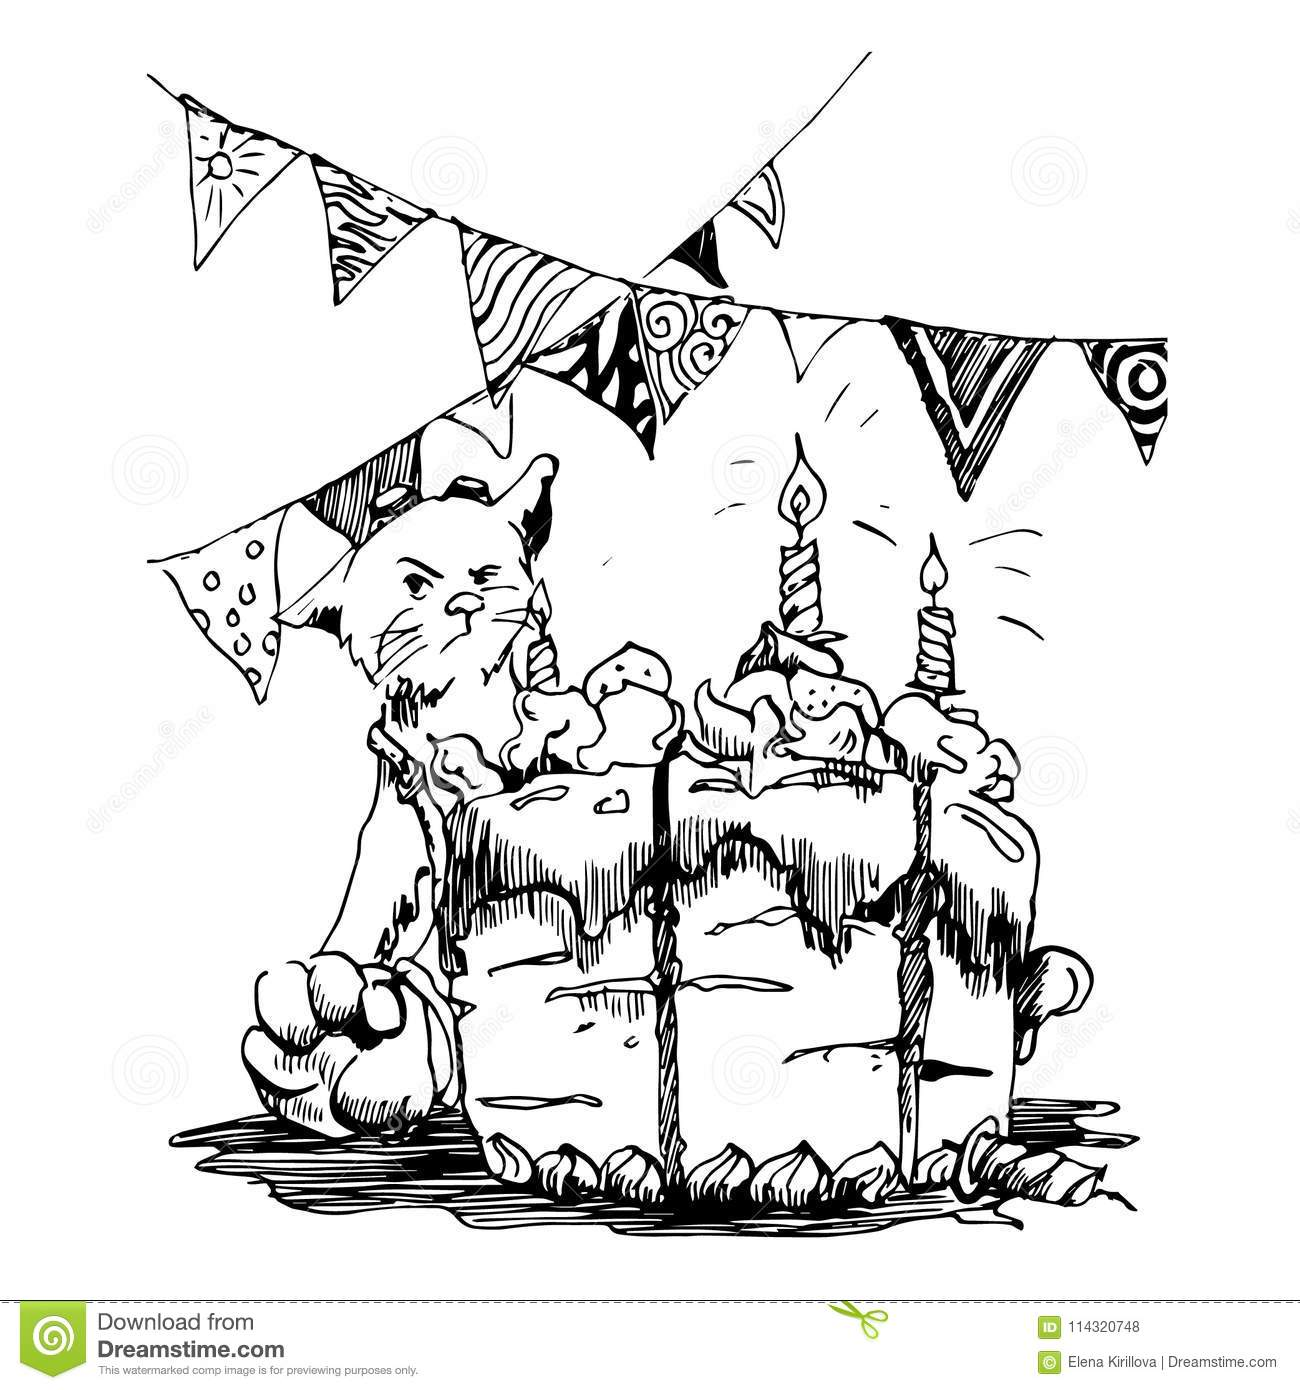 a cat celebrates a birthday the cat does not want to share the cake Princess Cake a cat celebrates a birthday the cat does not want to share the cake